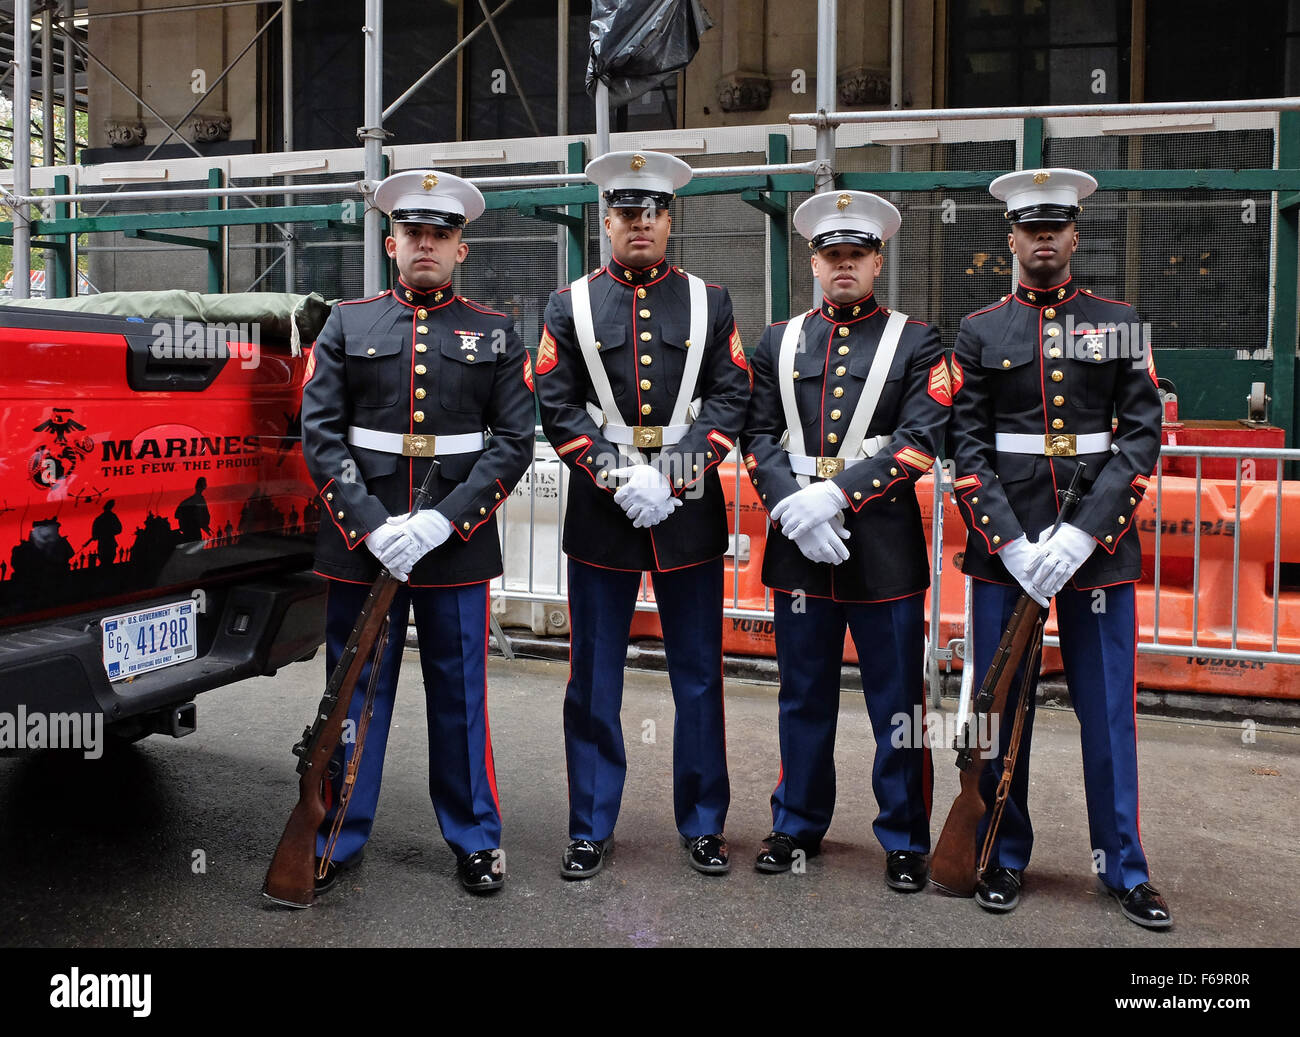 Four United States Marines in uniform prior to the 2015 Veteran's Day parade in New York City - Stock Image